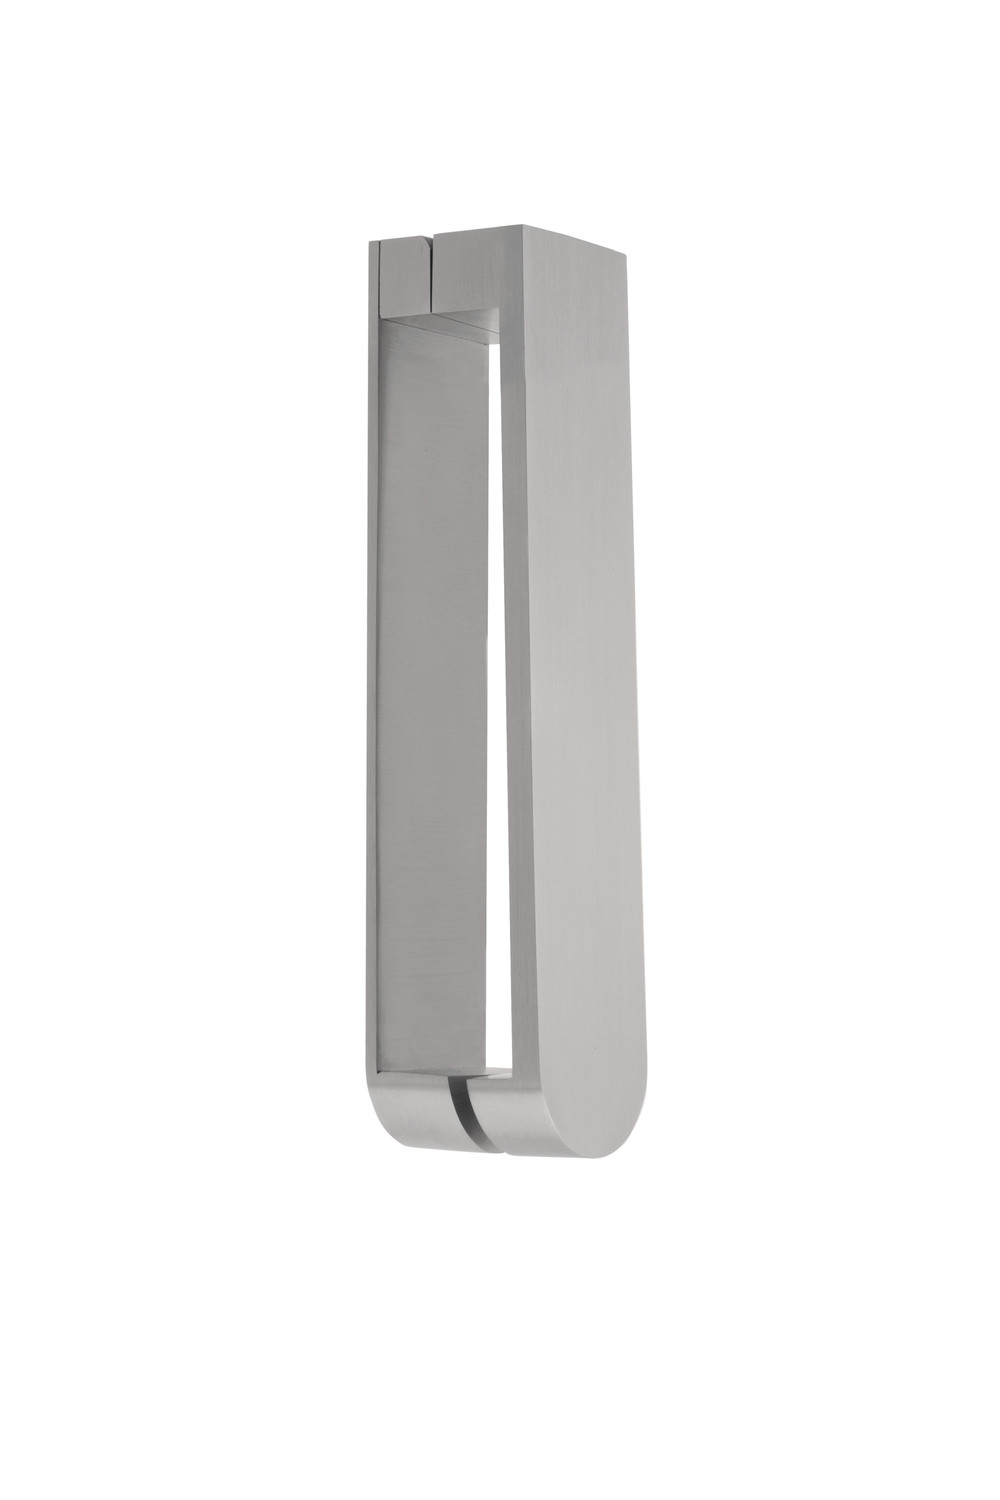 LB39-door-knocker-satin-stainless-steel.jpg